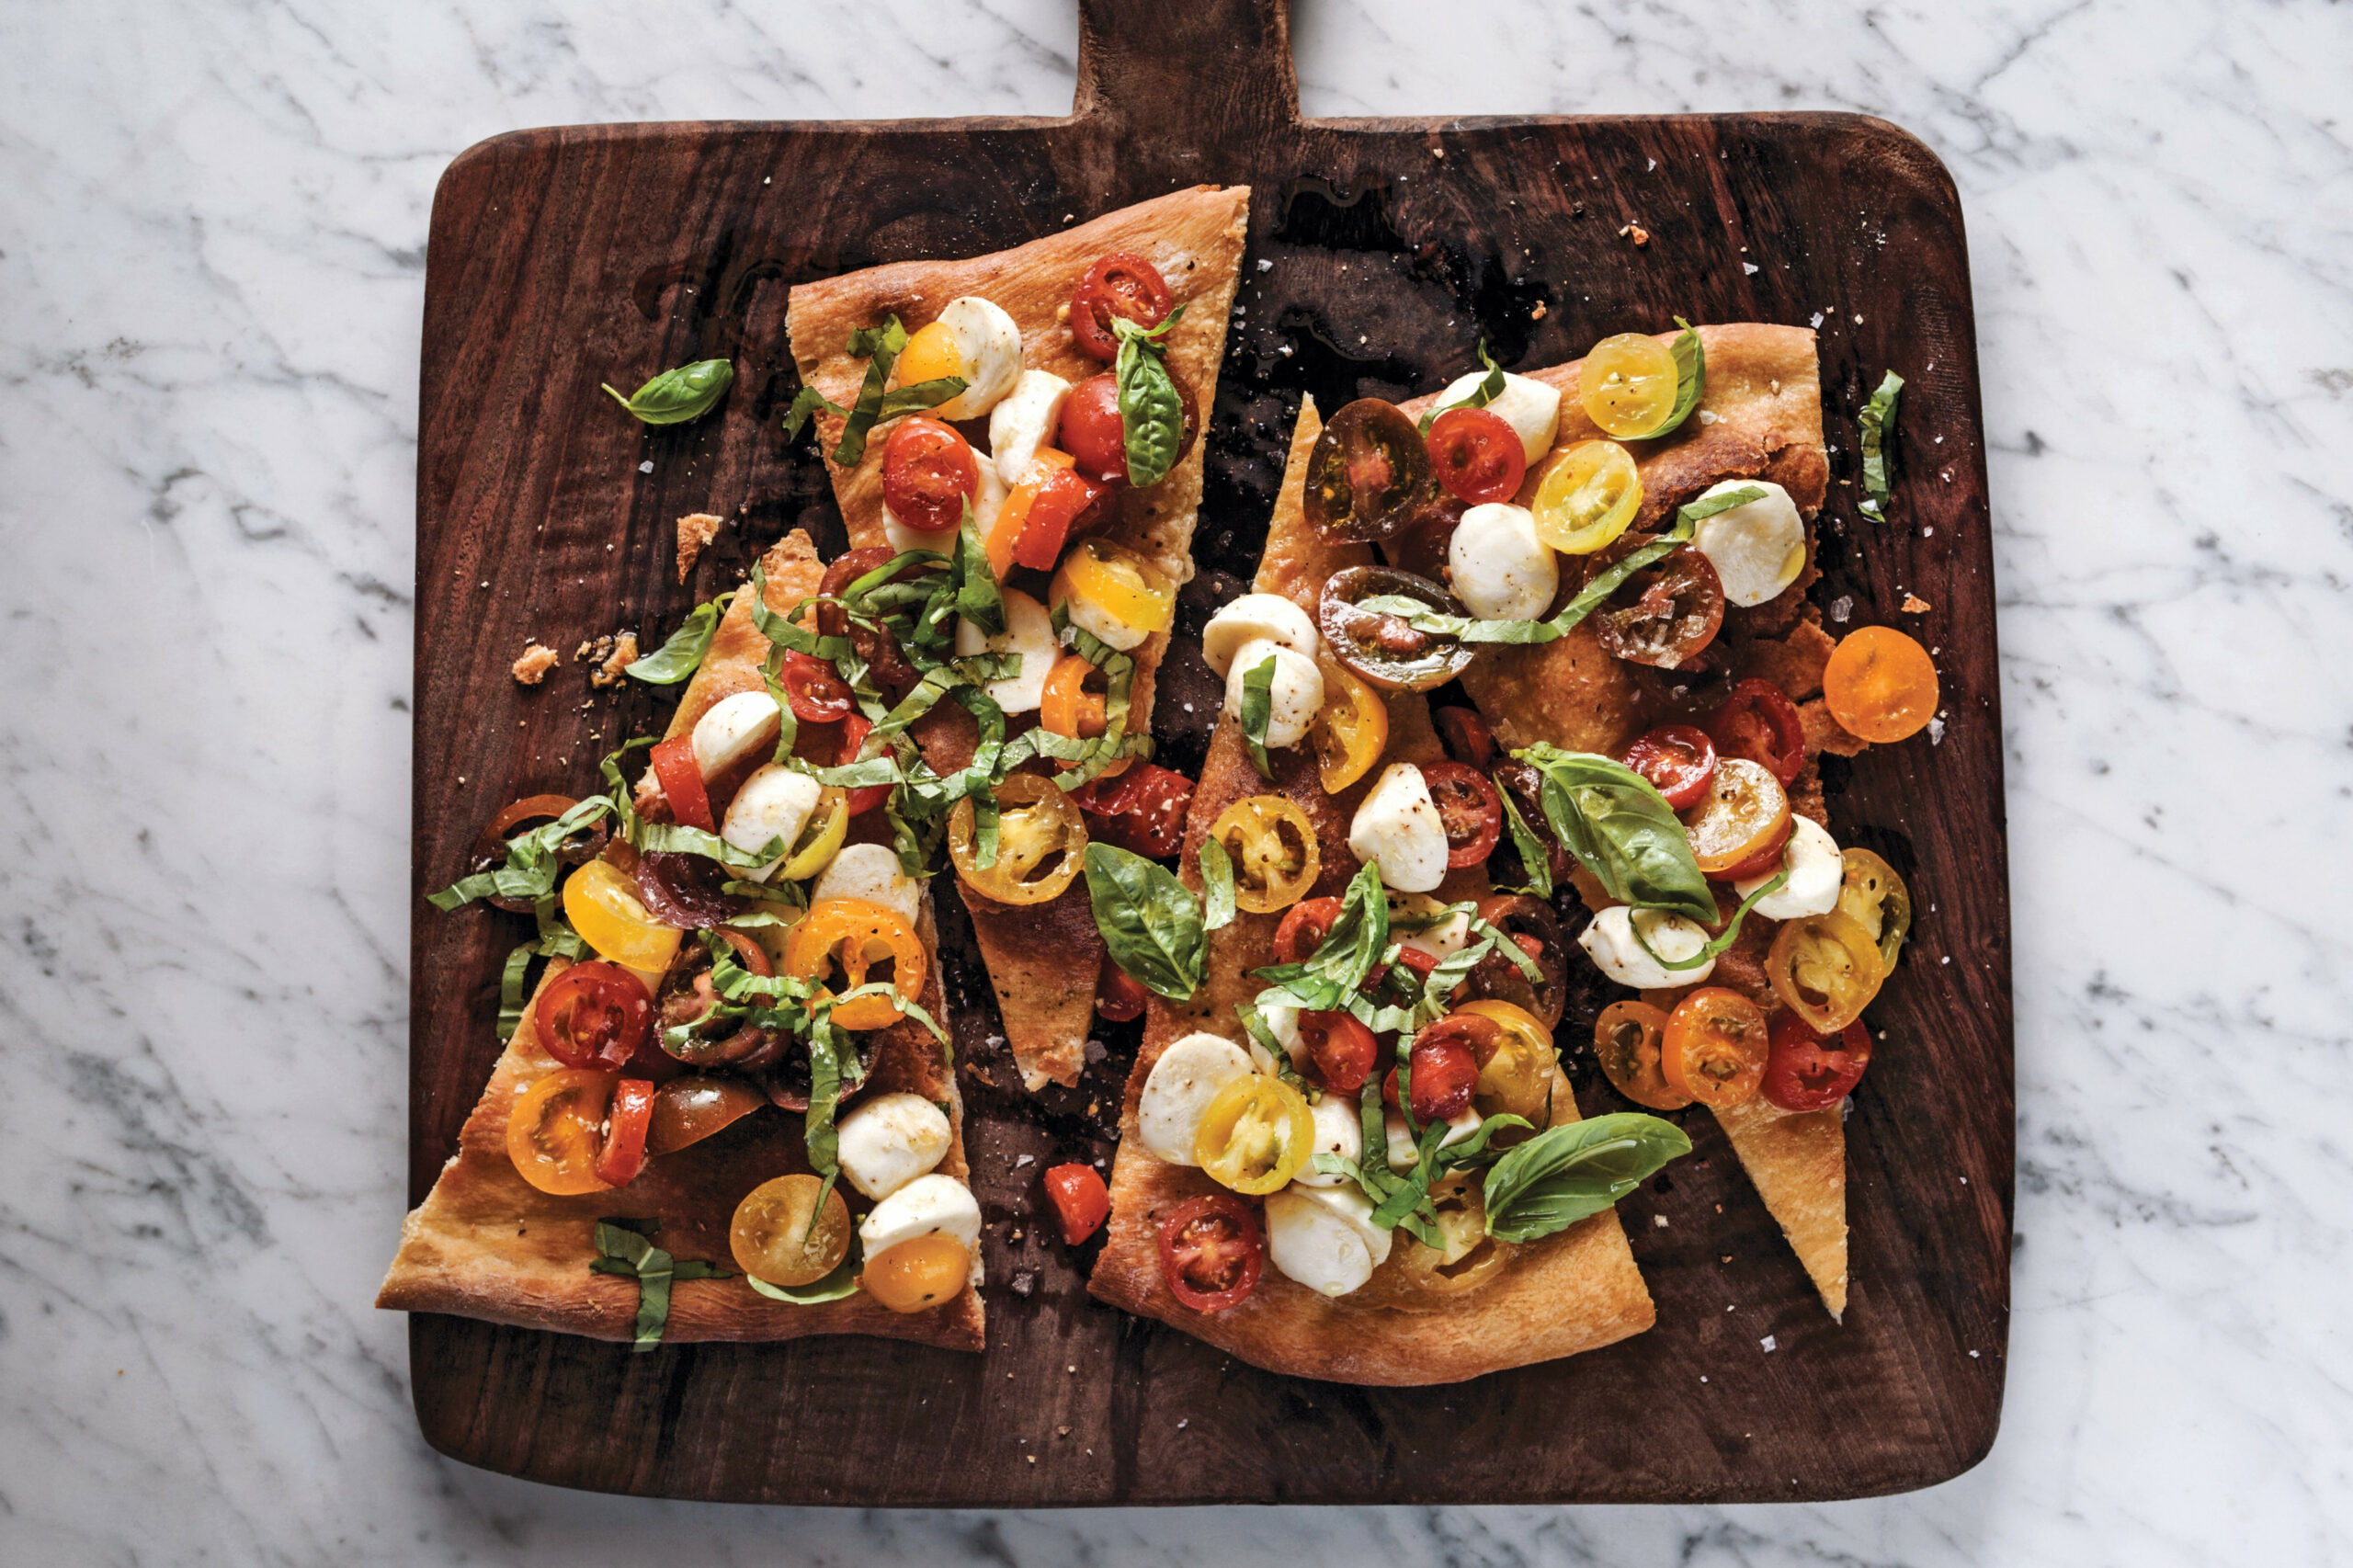 11 Vegetarian Appetizers And Hors D'oeuvres | Epicurious - Recipes Vegetarian Starters